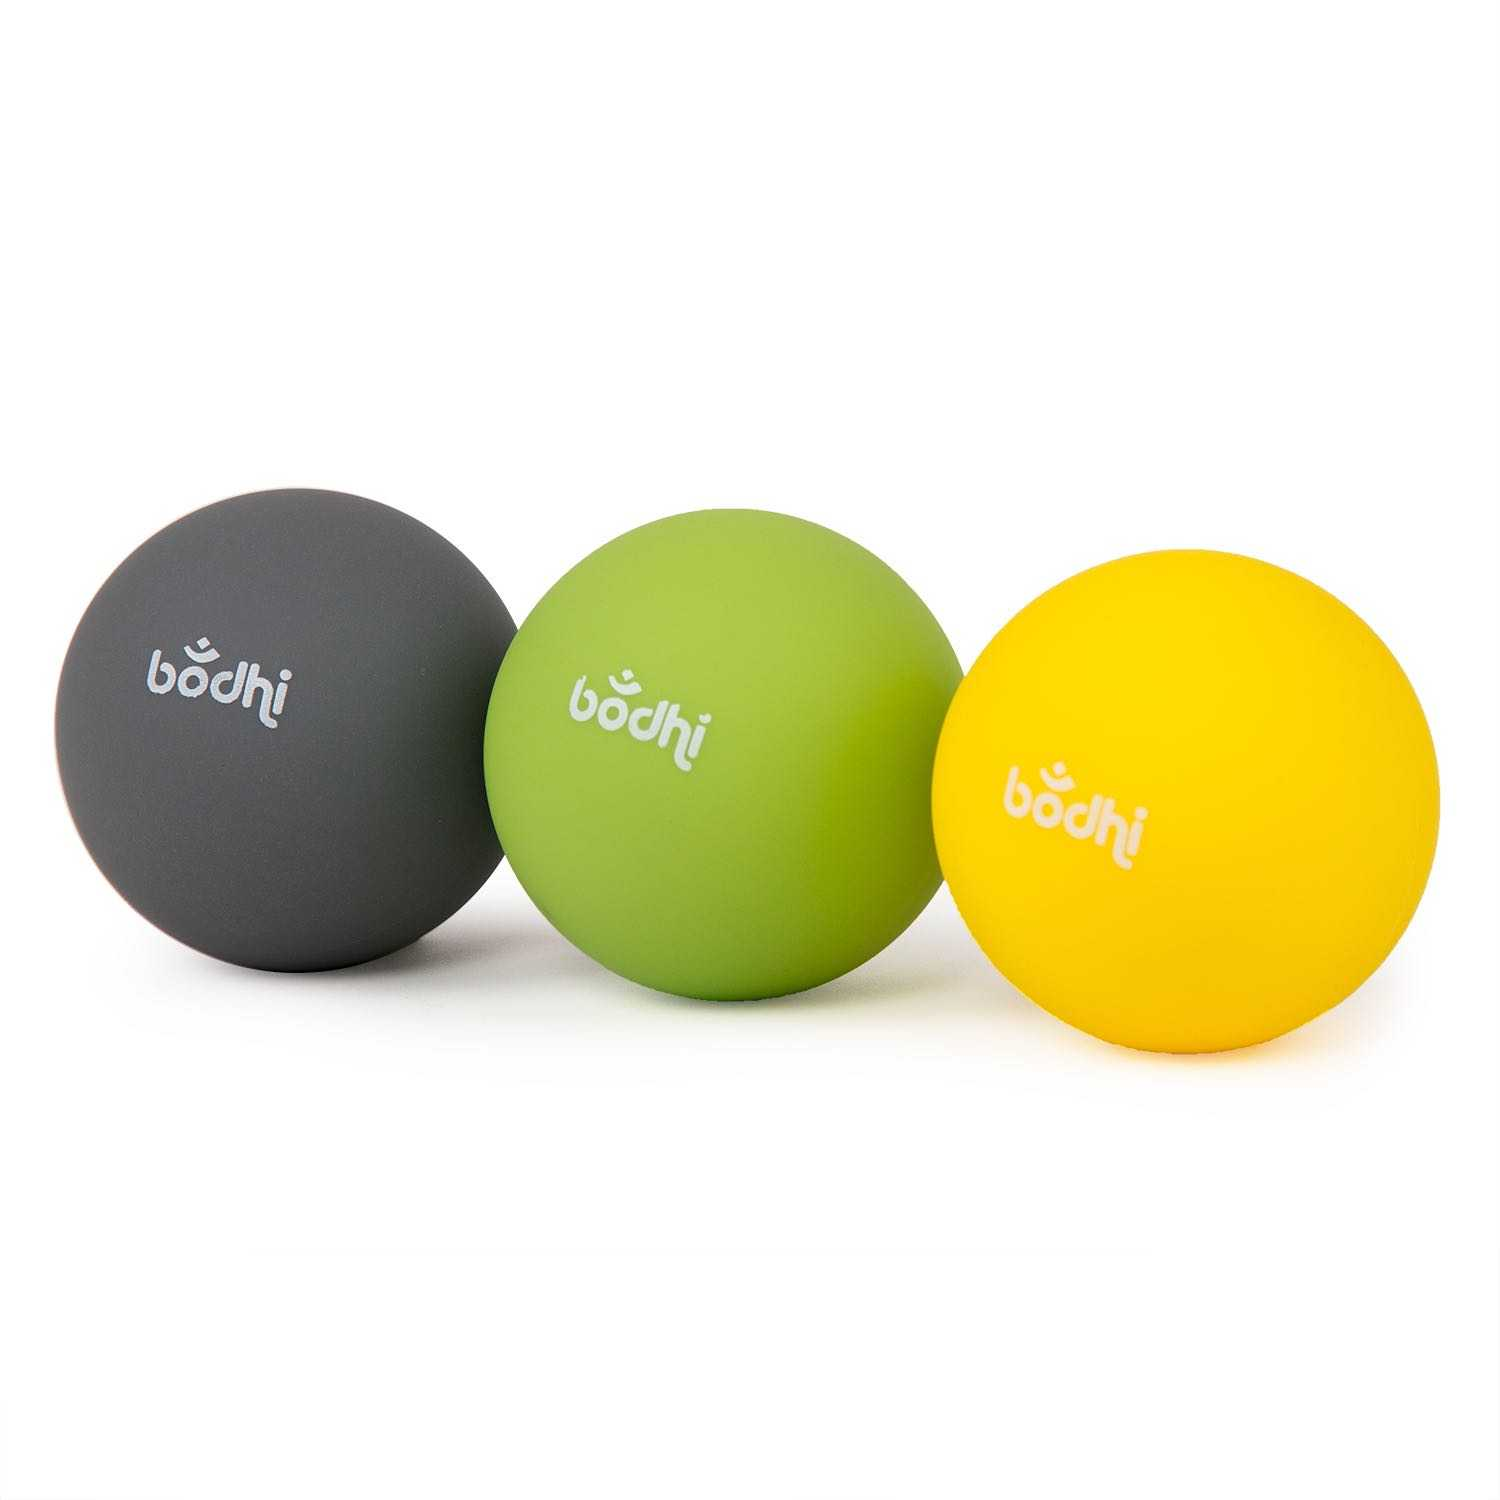 fmb3_pilates_und_fitness_faszien_massage_ball_3er_set_reihe Stilvolle 5 In Cm Dekorationen